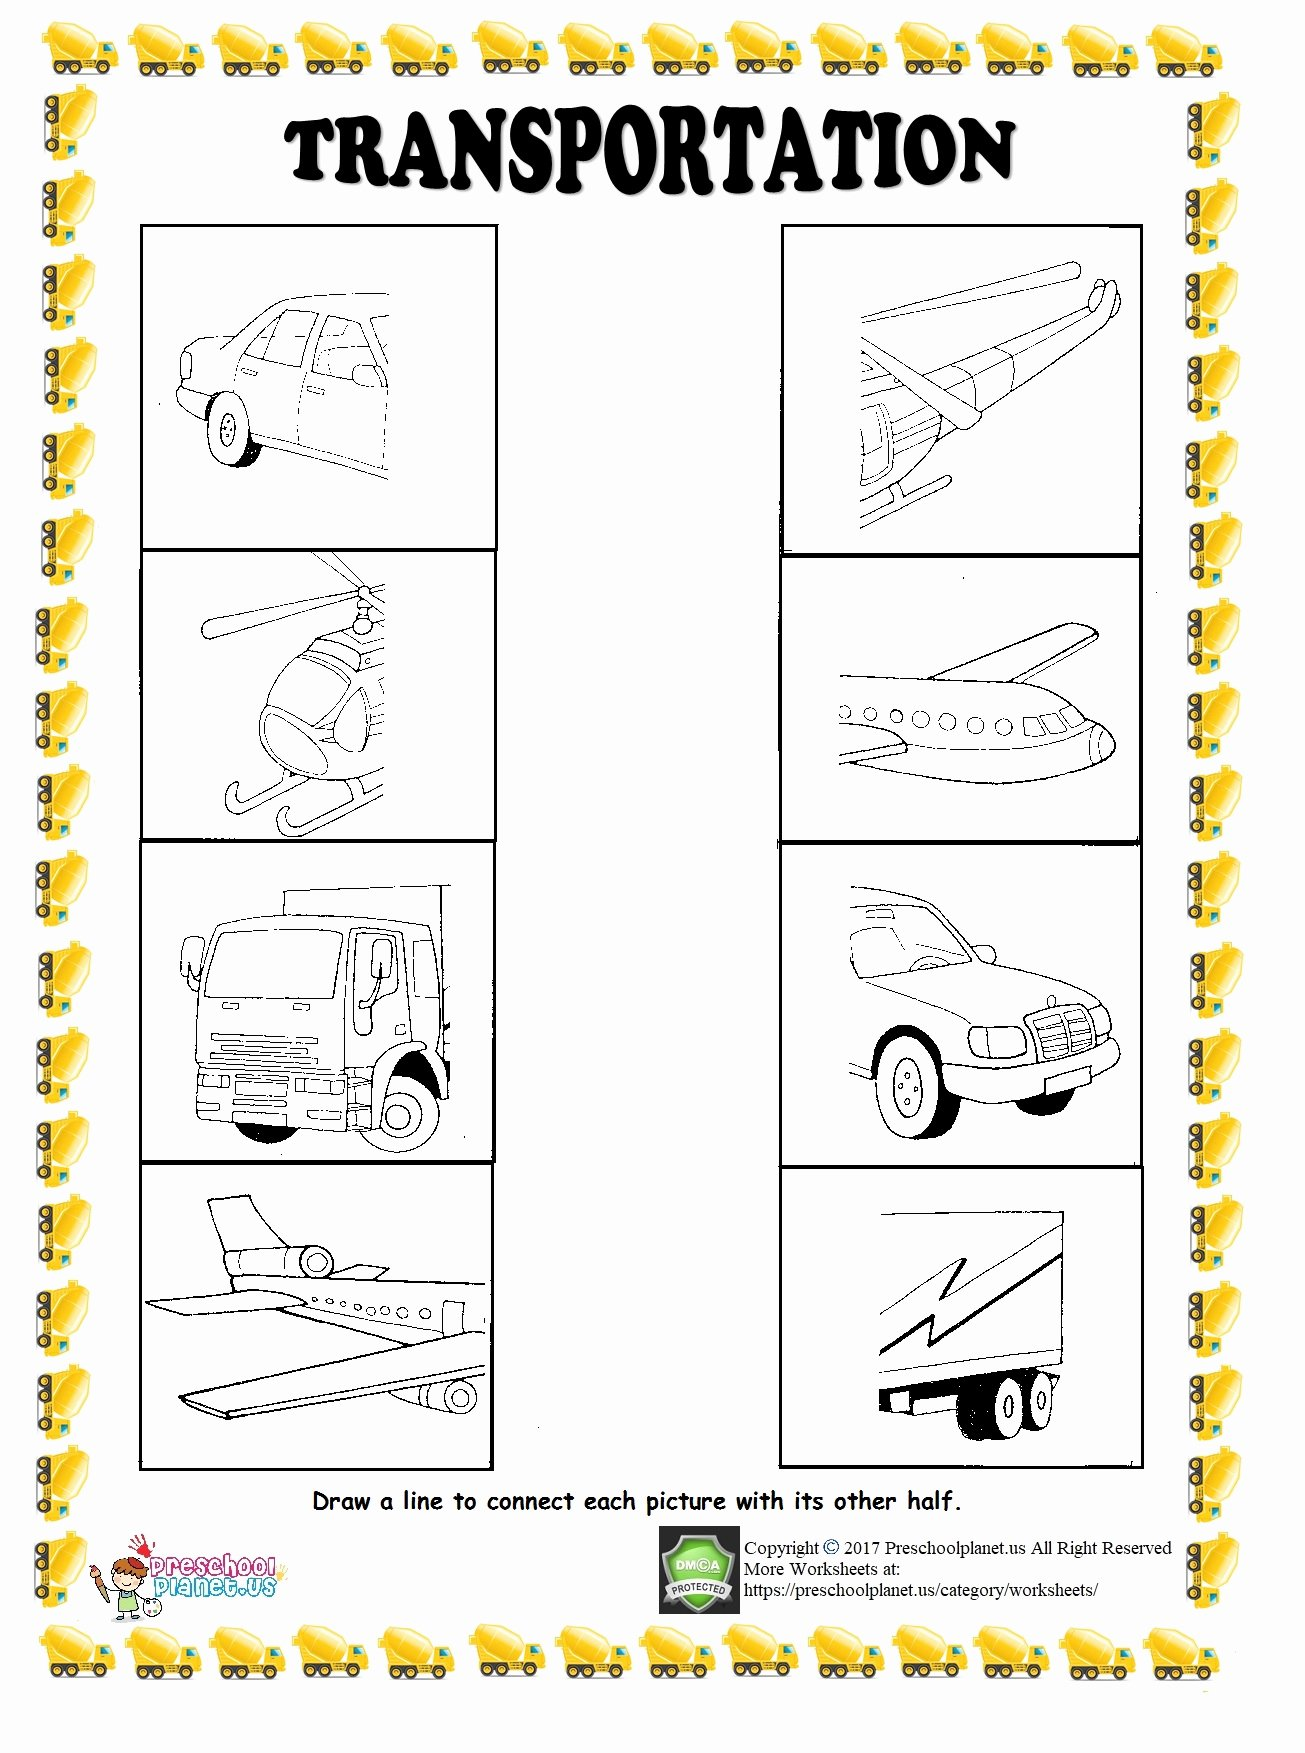 Worksheets for Preschoolers On Transportation Inspirational Find Half Of Given Transportation Worksheet – Preschoolplanet